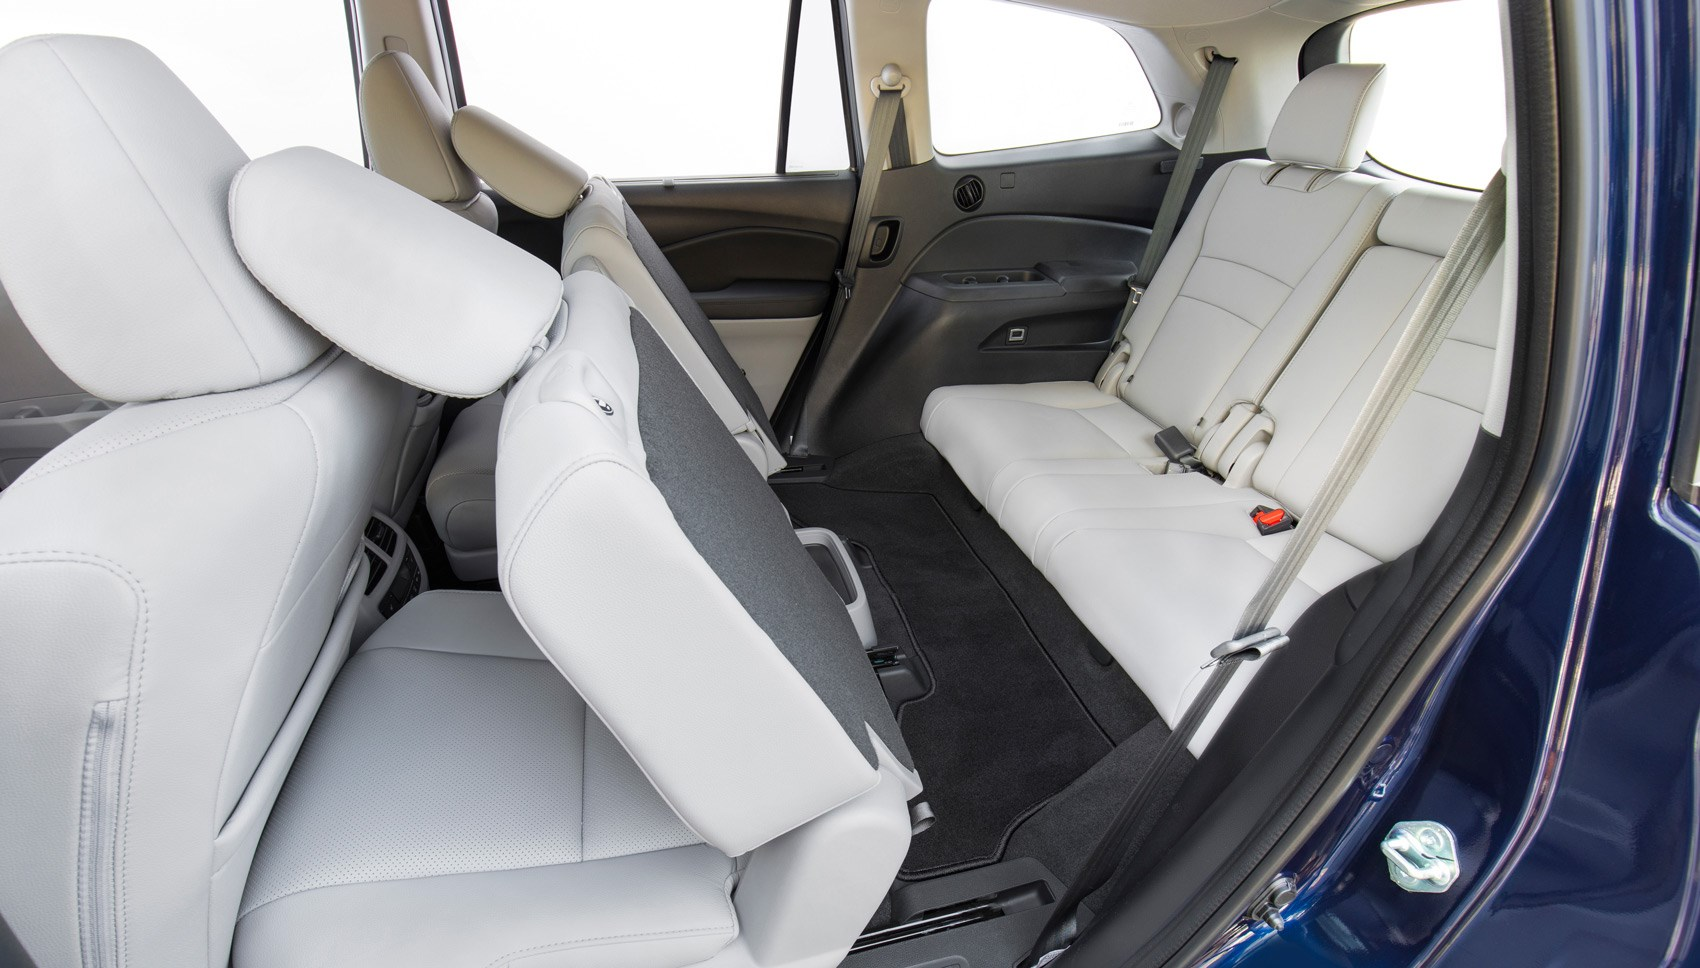 Honda Pilot rear seats